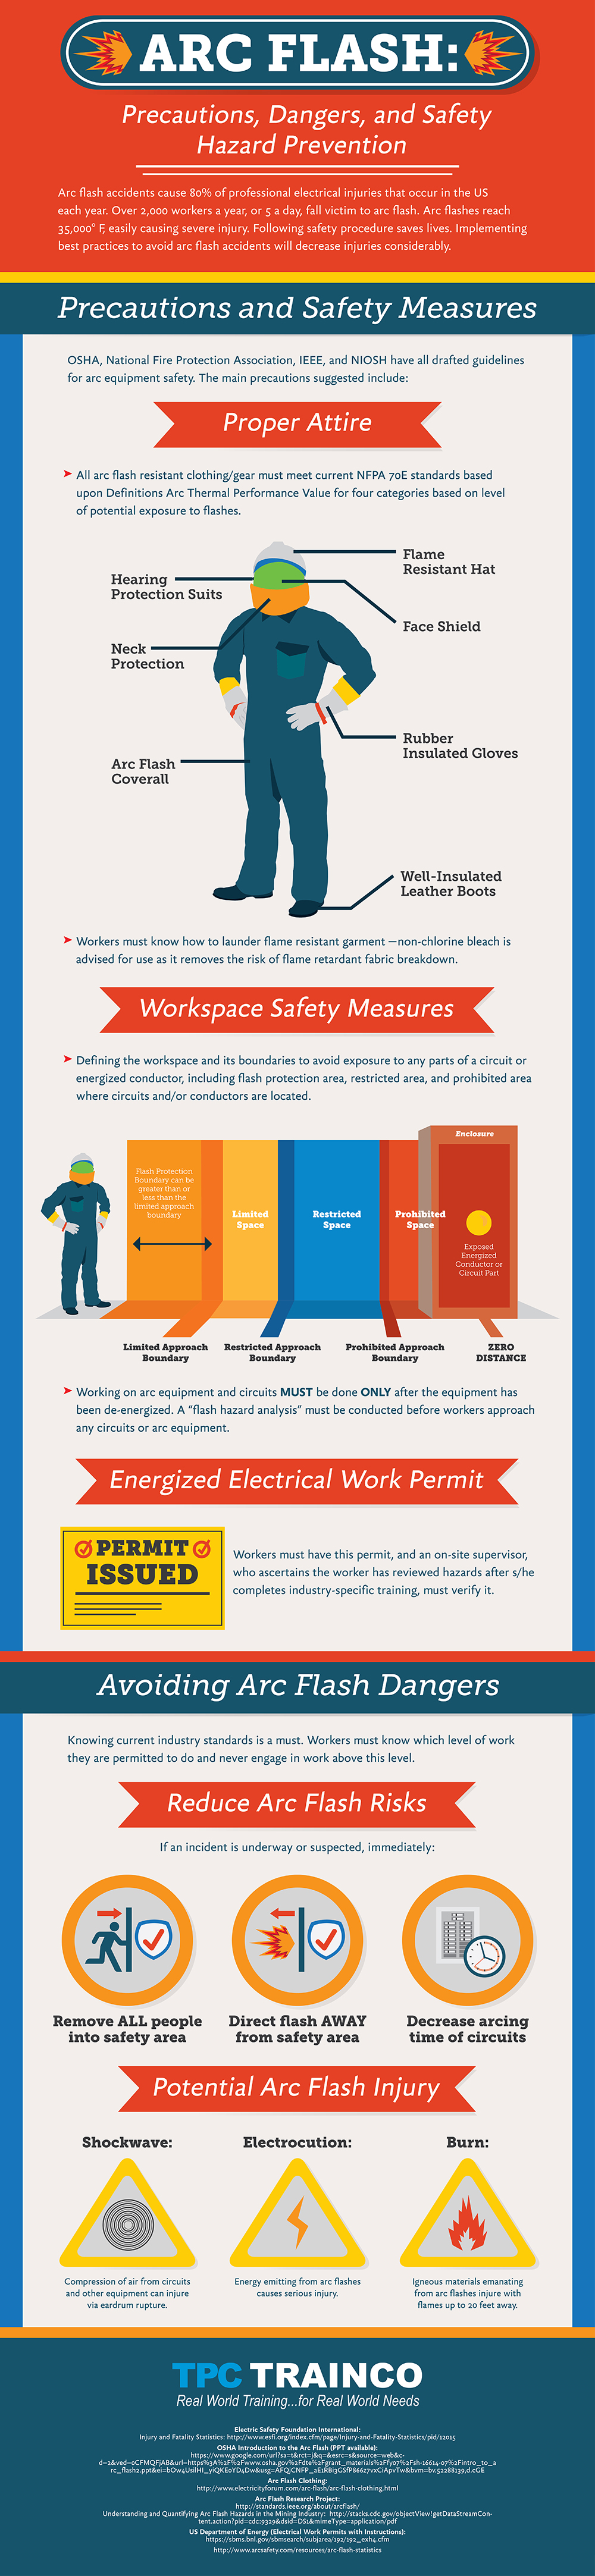 Arc Flash Precautions, Dangers and Safety